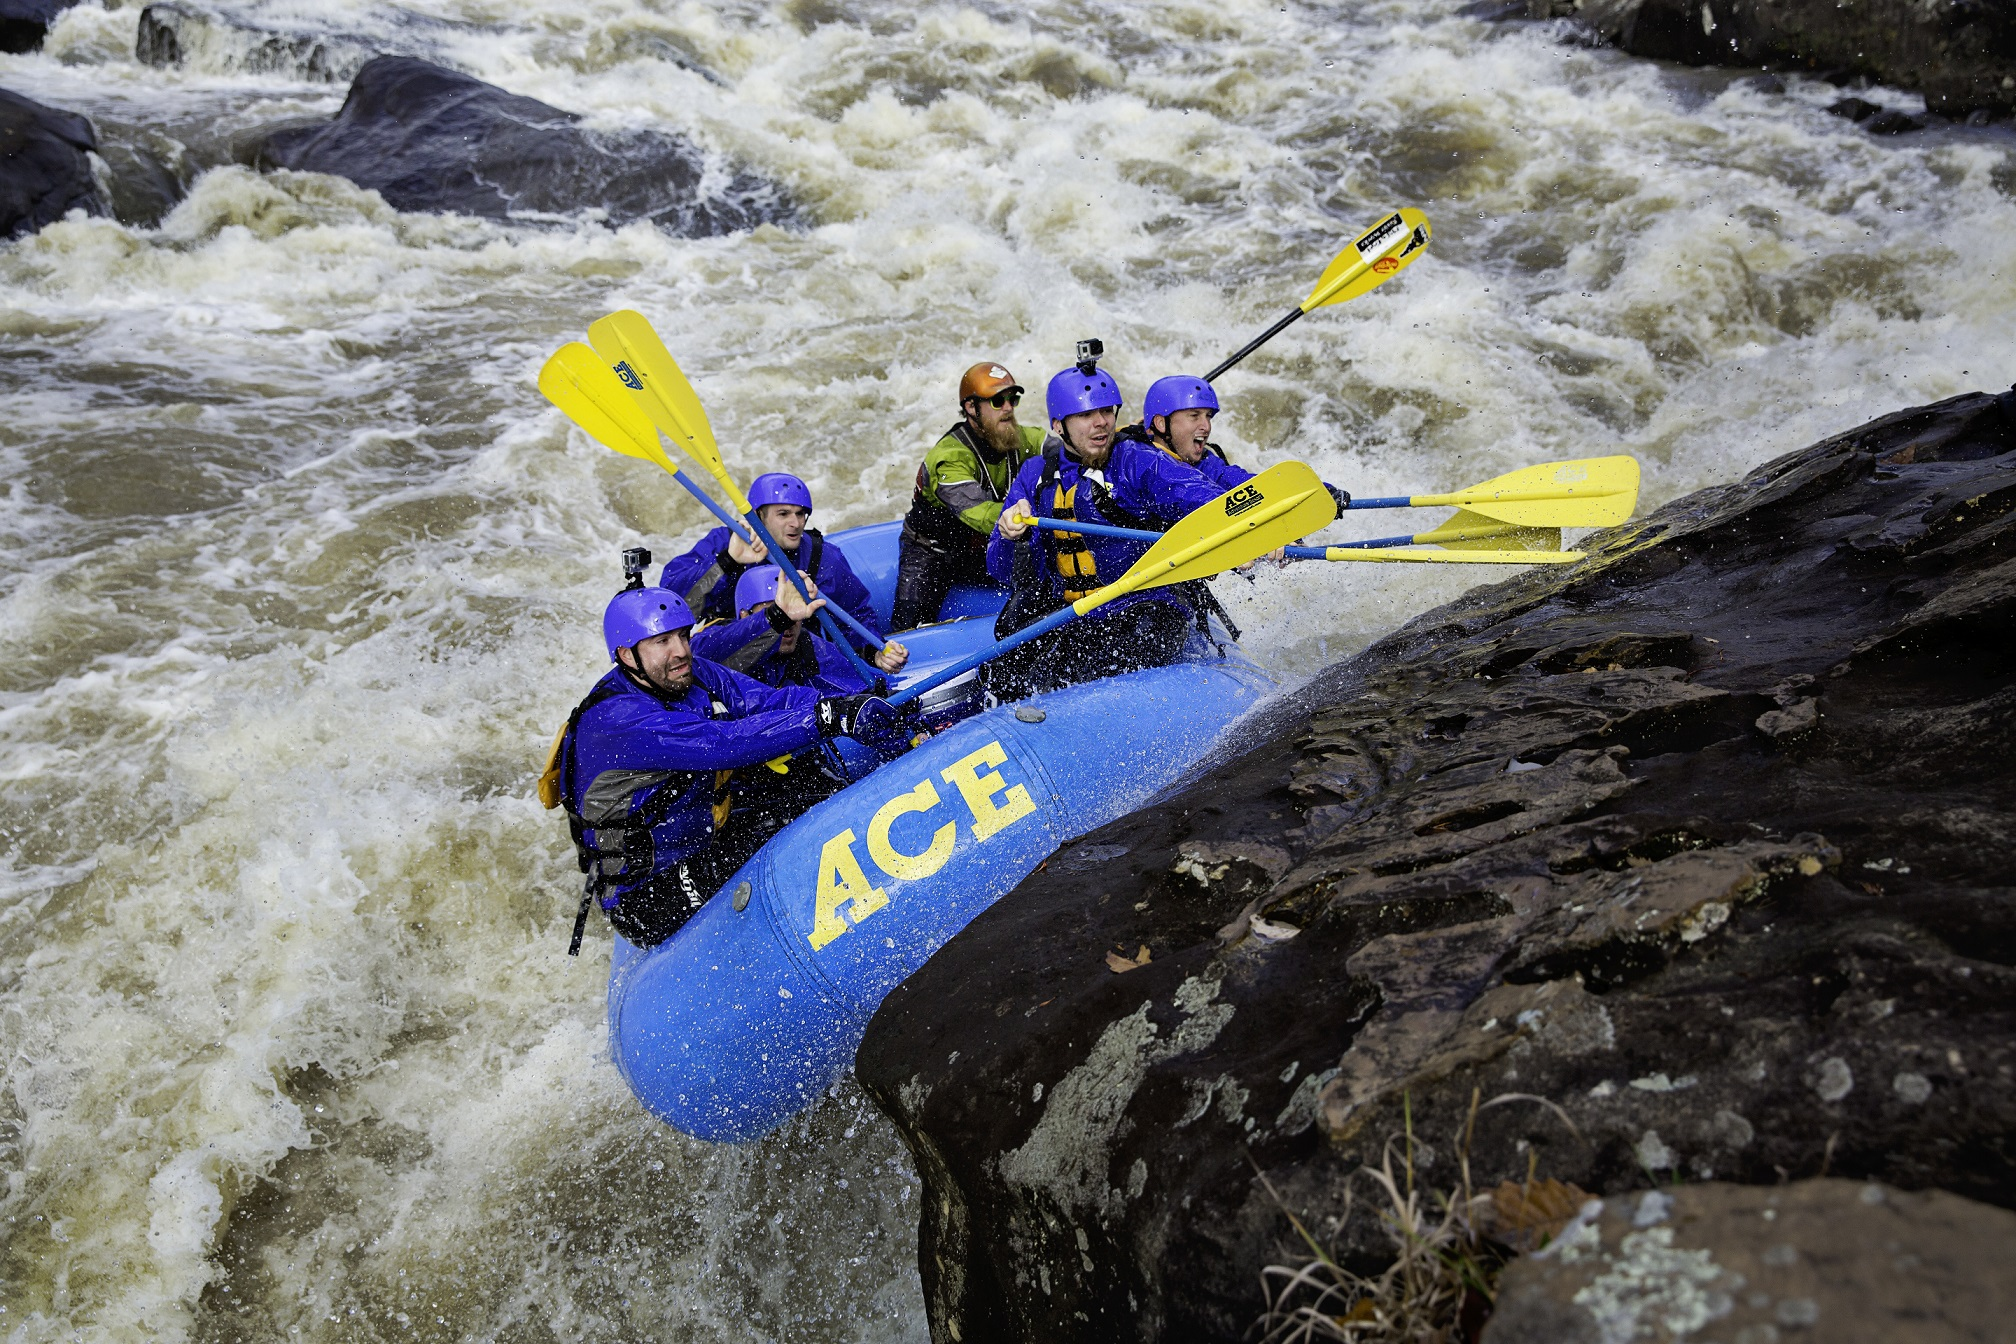 10 Of The World S Most Notorious Whitewater Rapids